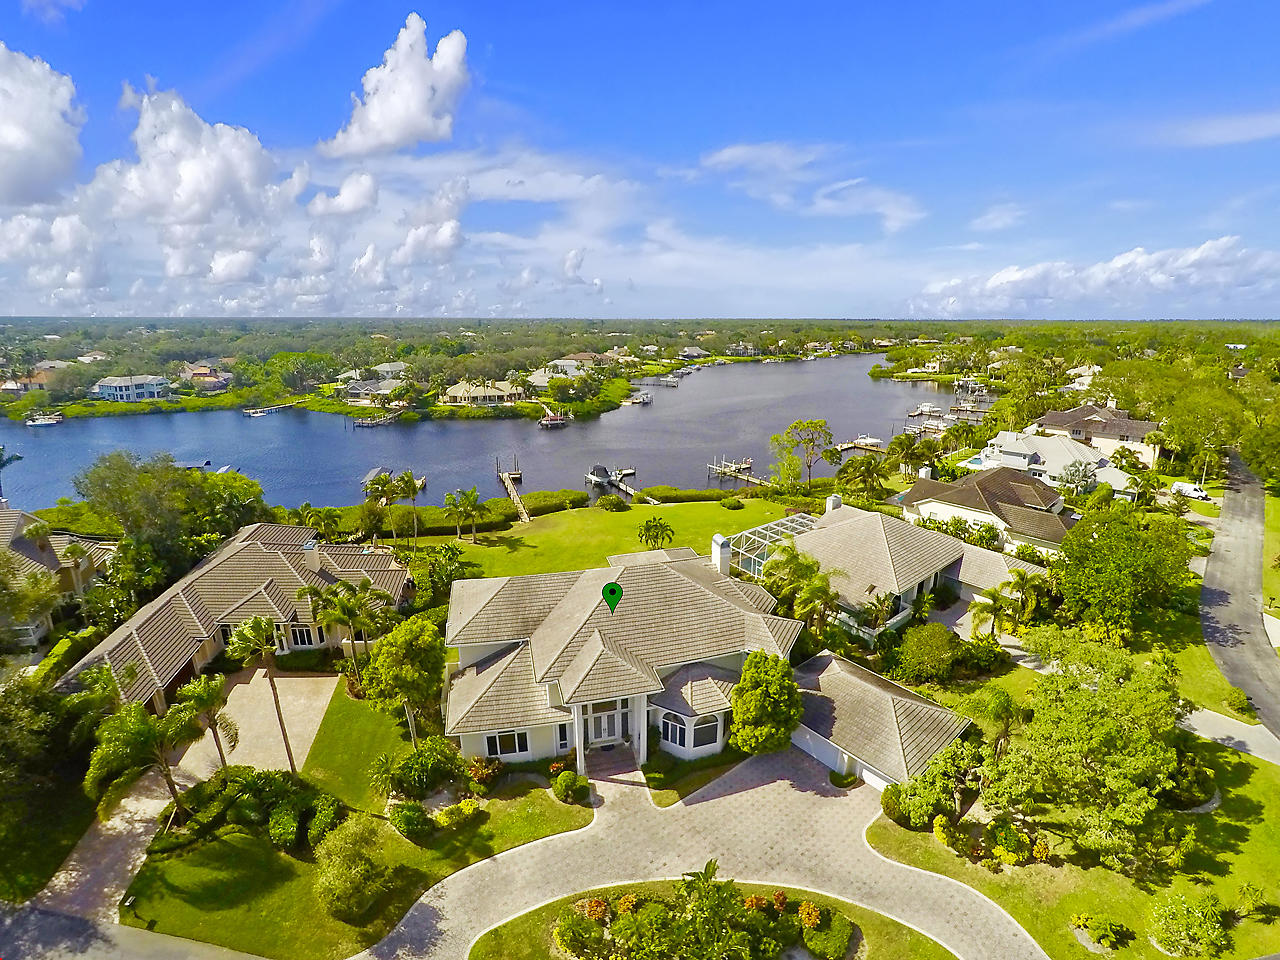 New Home for sale at 18411 Lakeside Drive in Tequesta